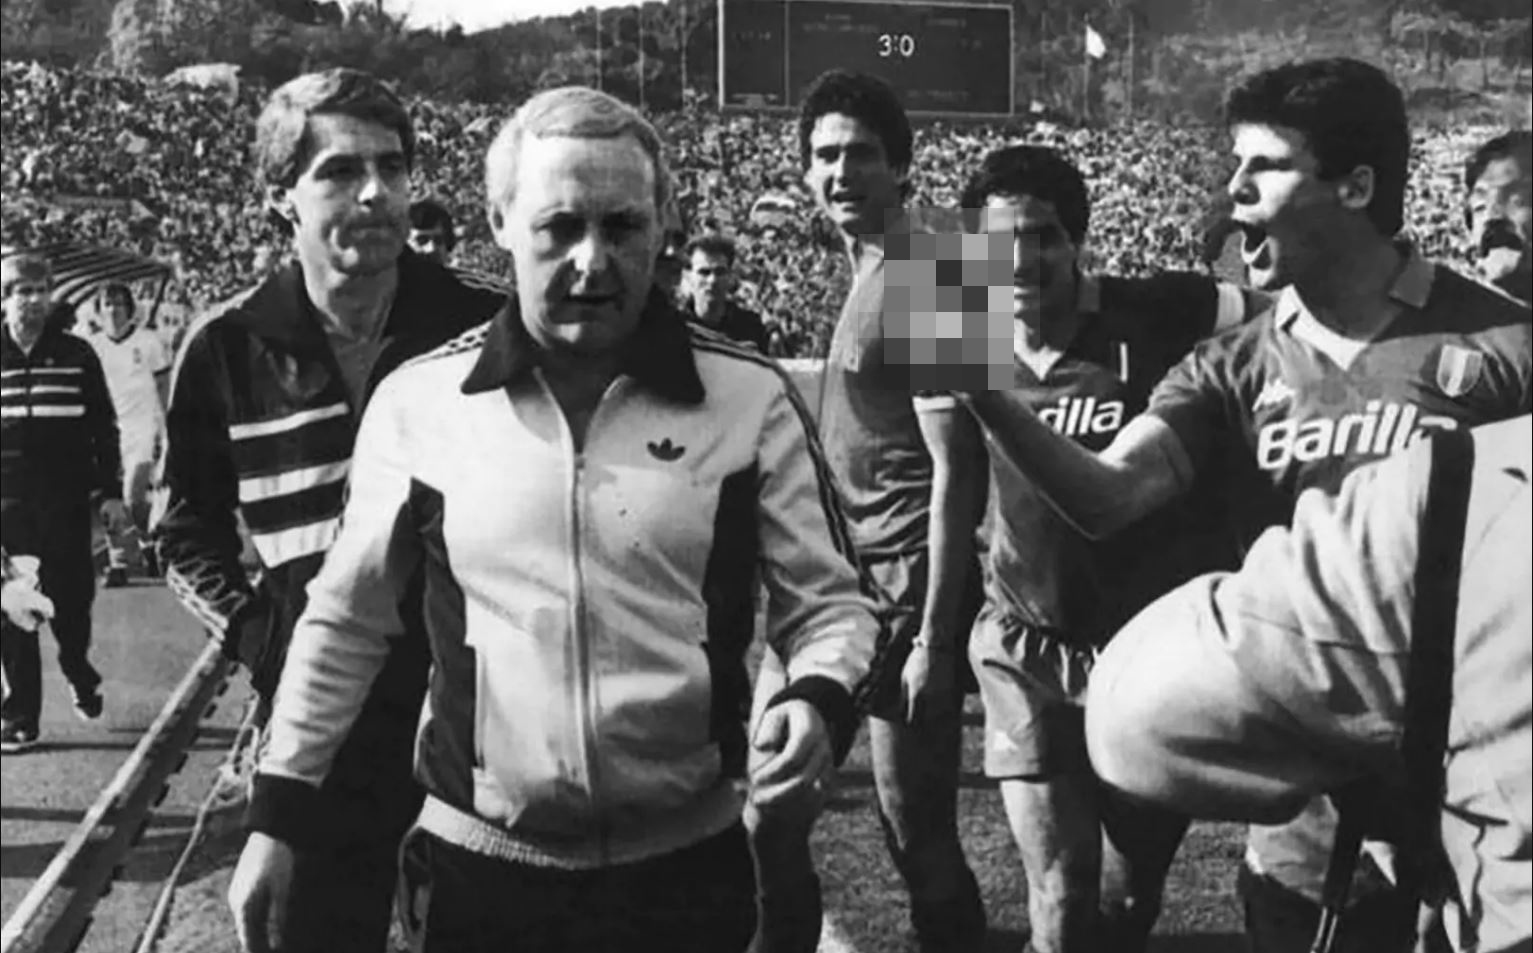 Jim McLean and Walter Smith run the gauntlet of Roma players, including Sebastiano Nela (far right)